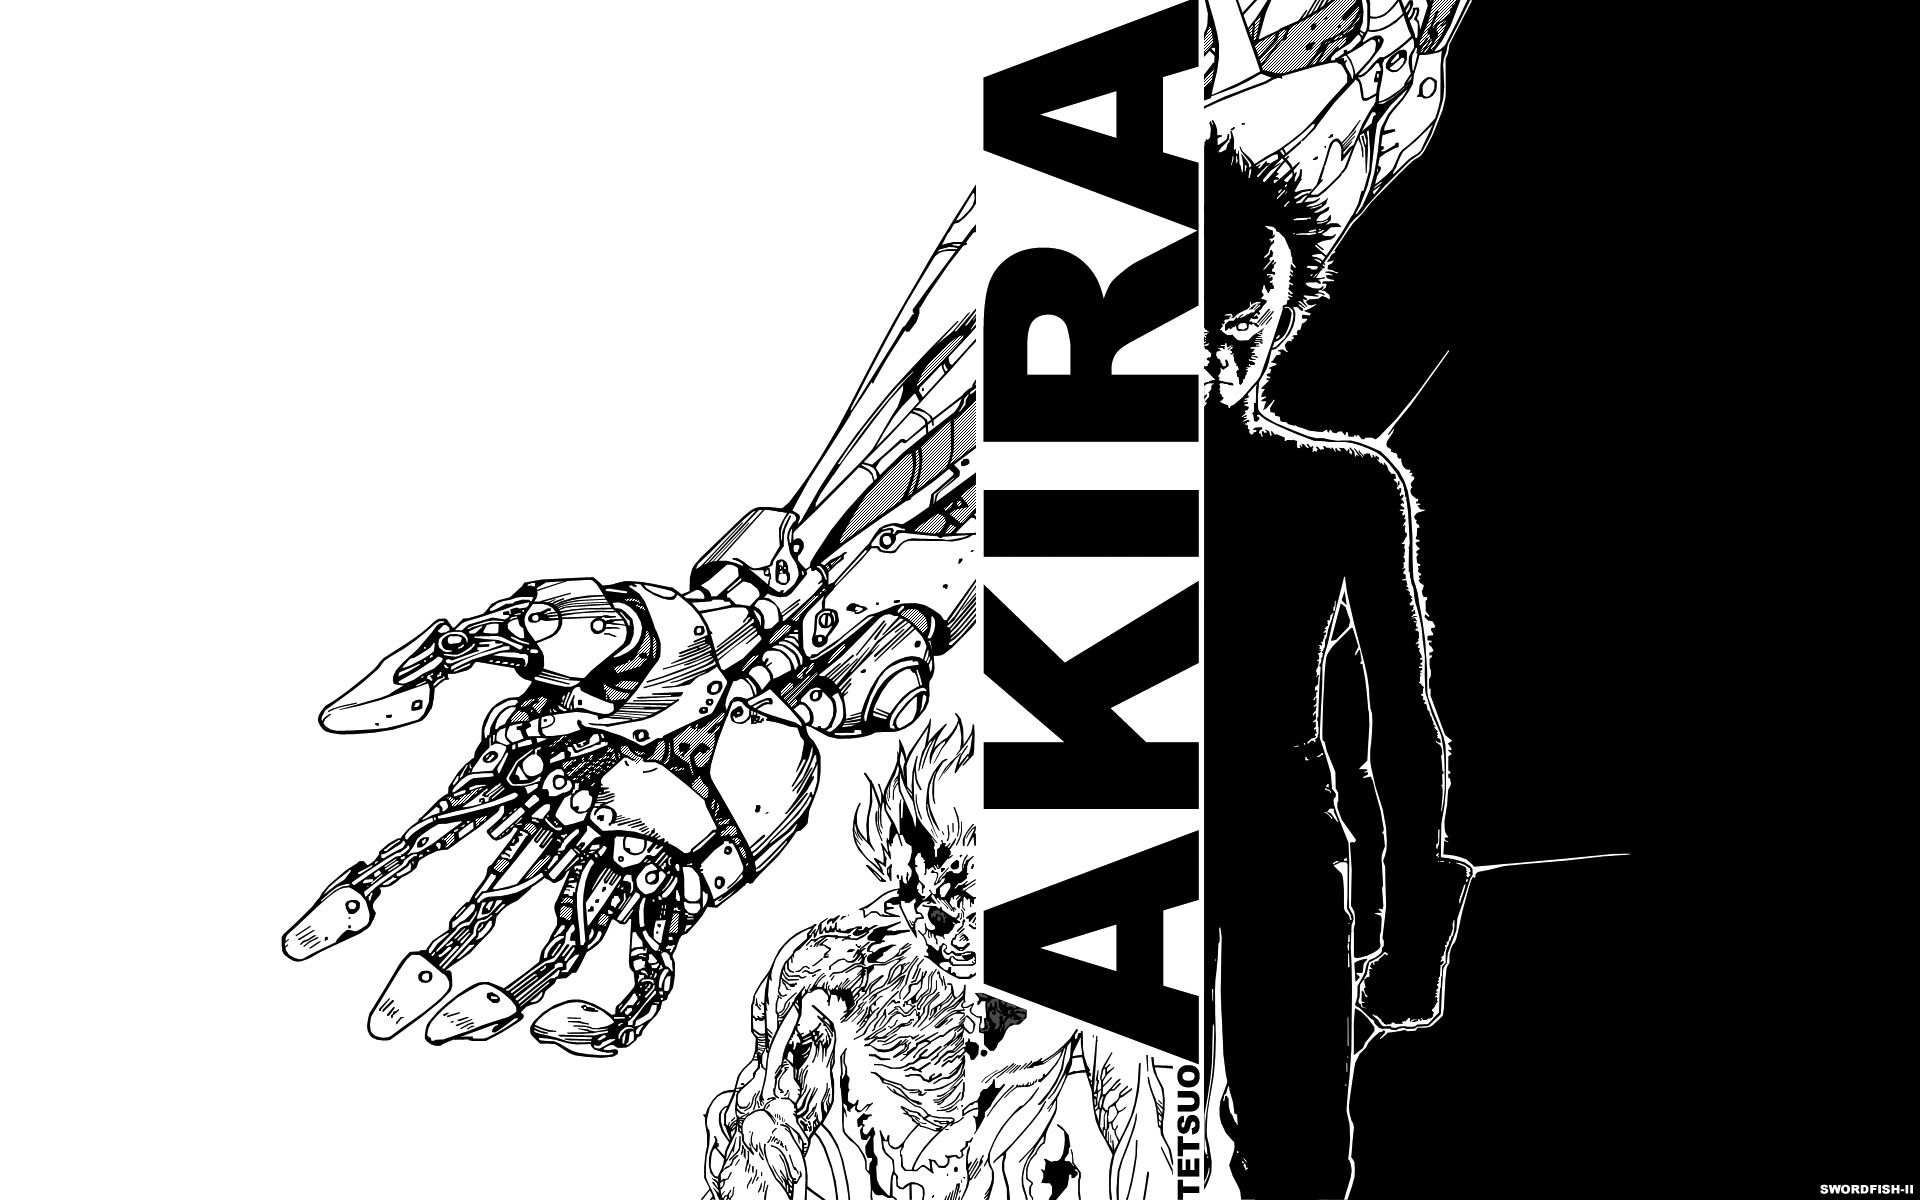 Akira Manga Wallpapers Top Free Akira Manga Backgrounds Wallpaperaccess